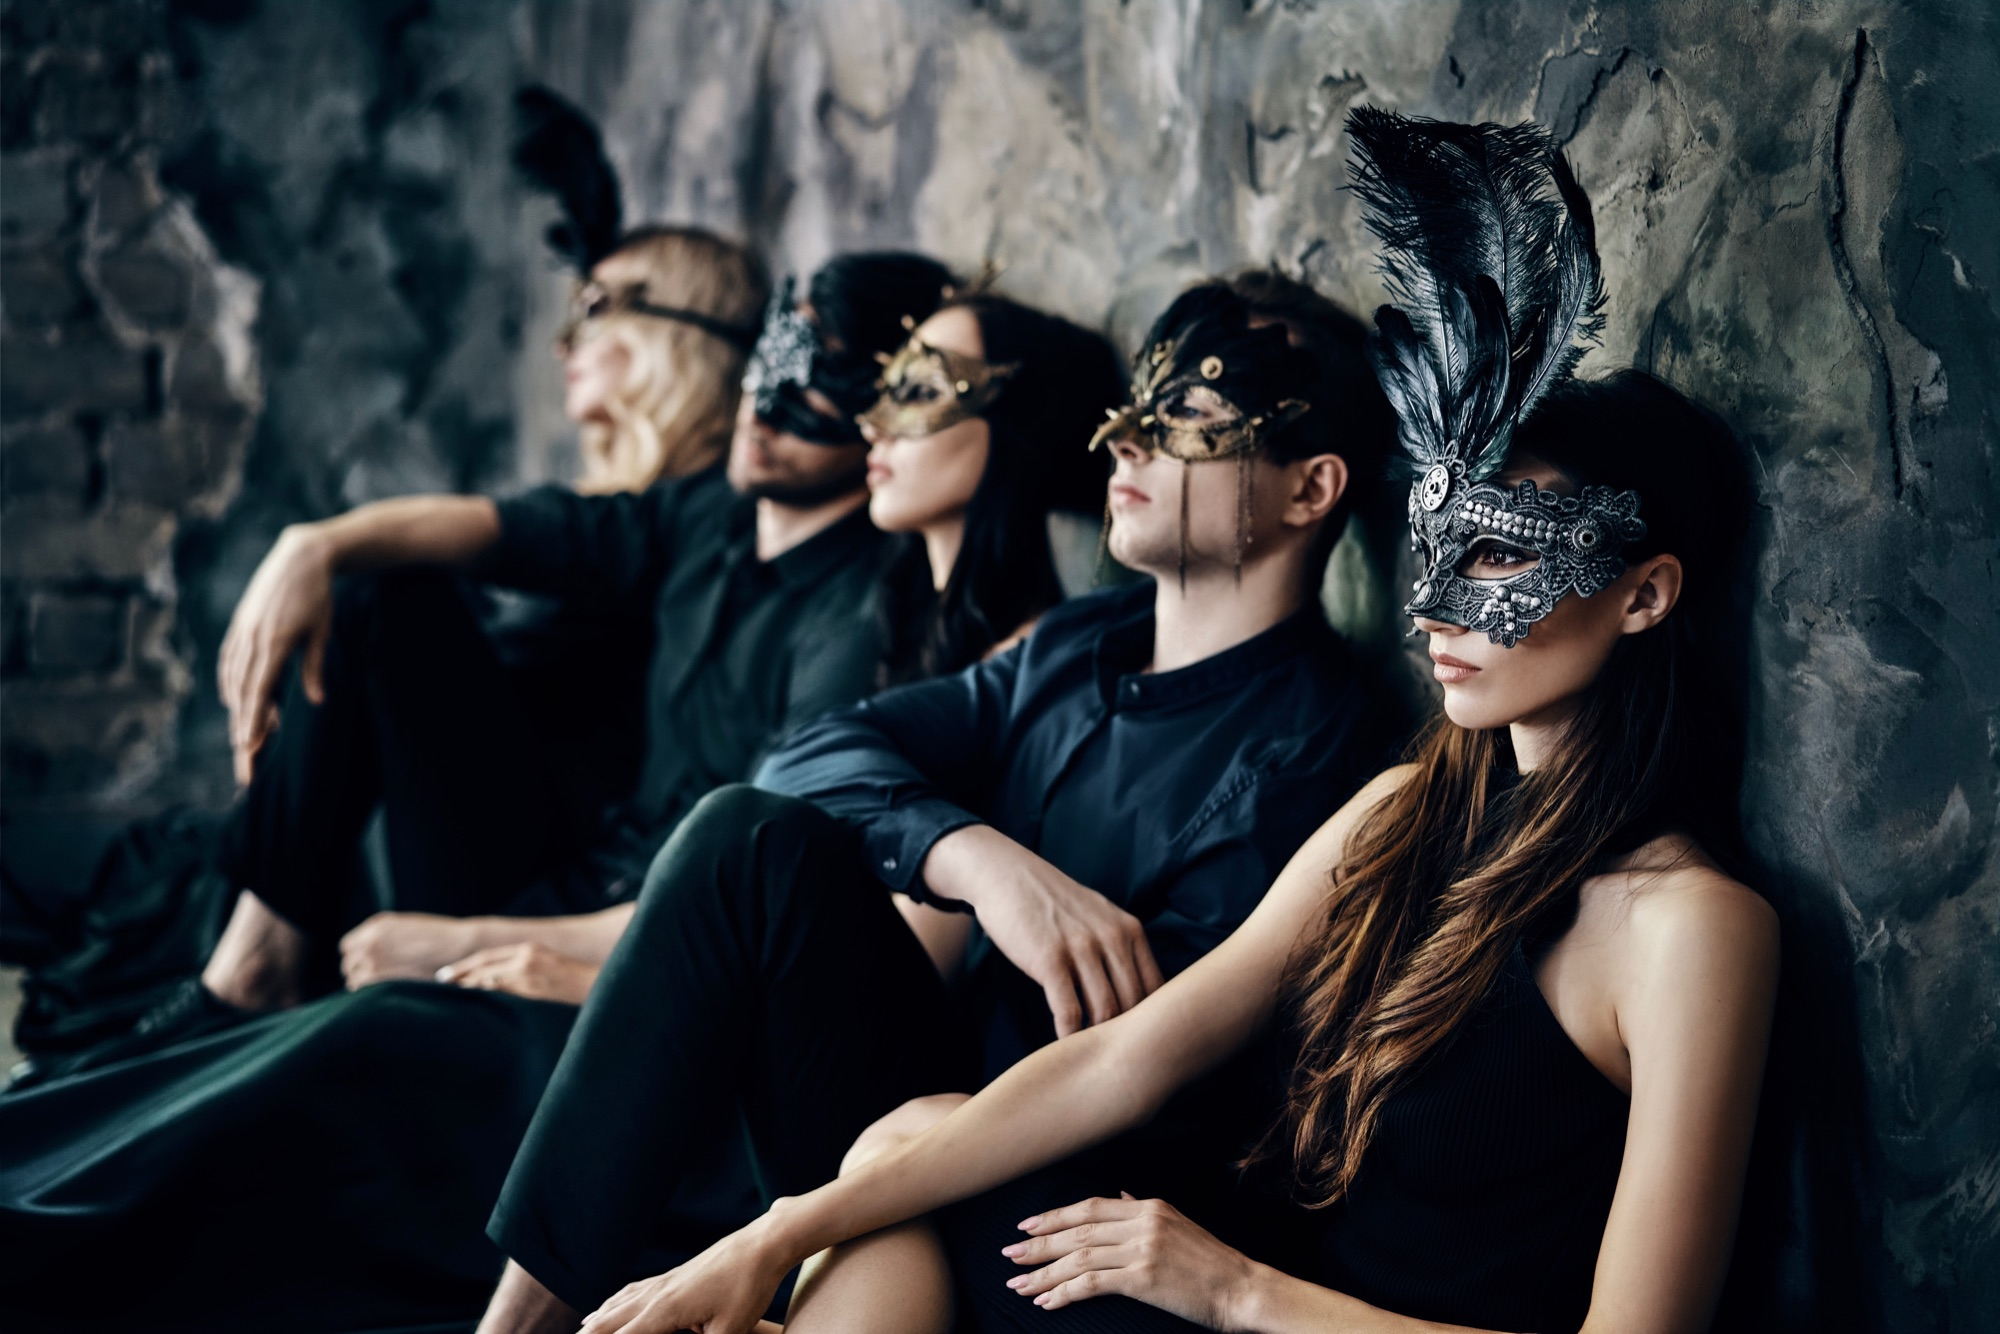 Group of 5 friends enjoying themselves at a masquerade ball